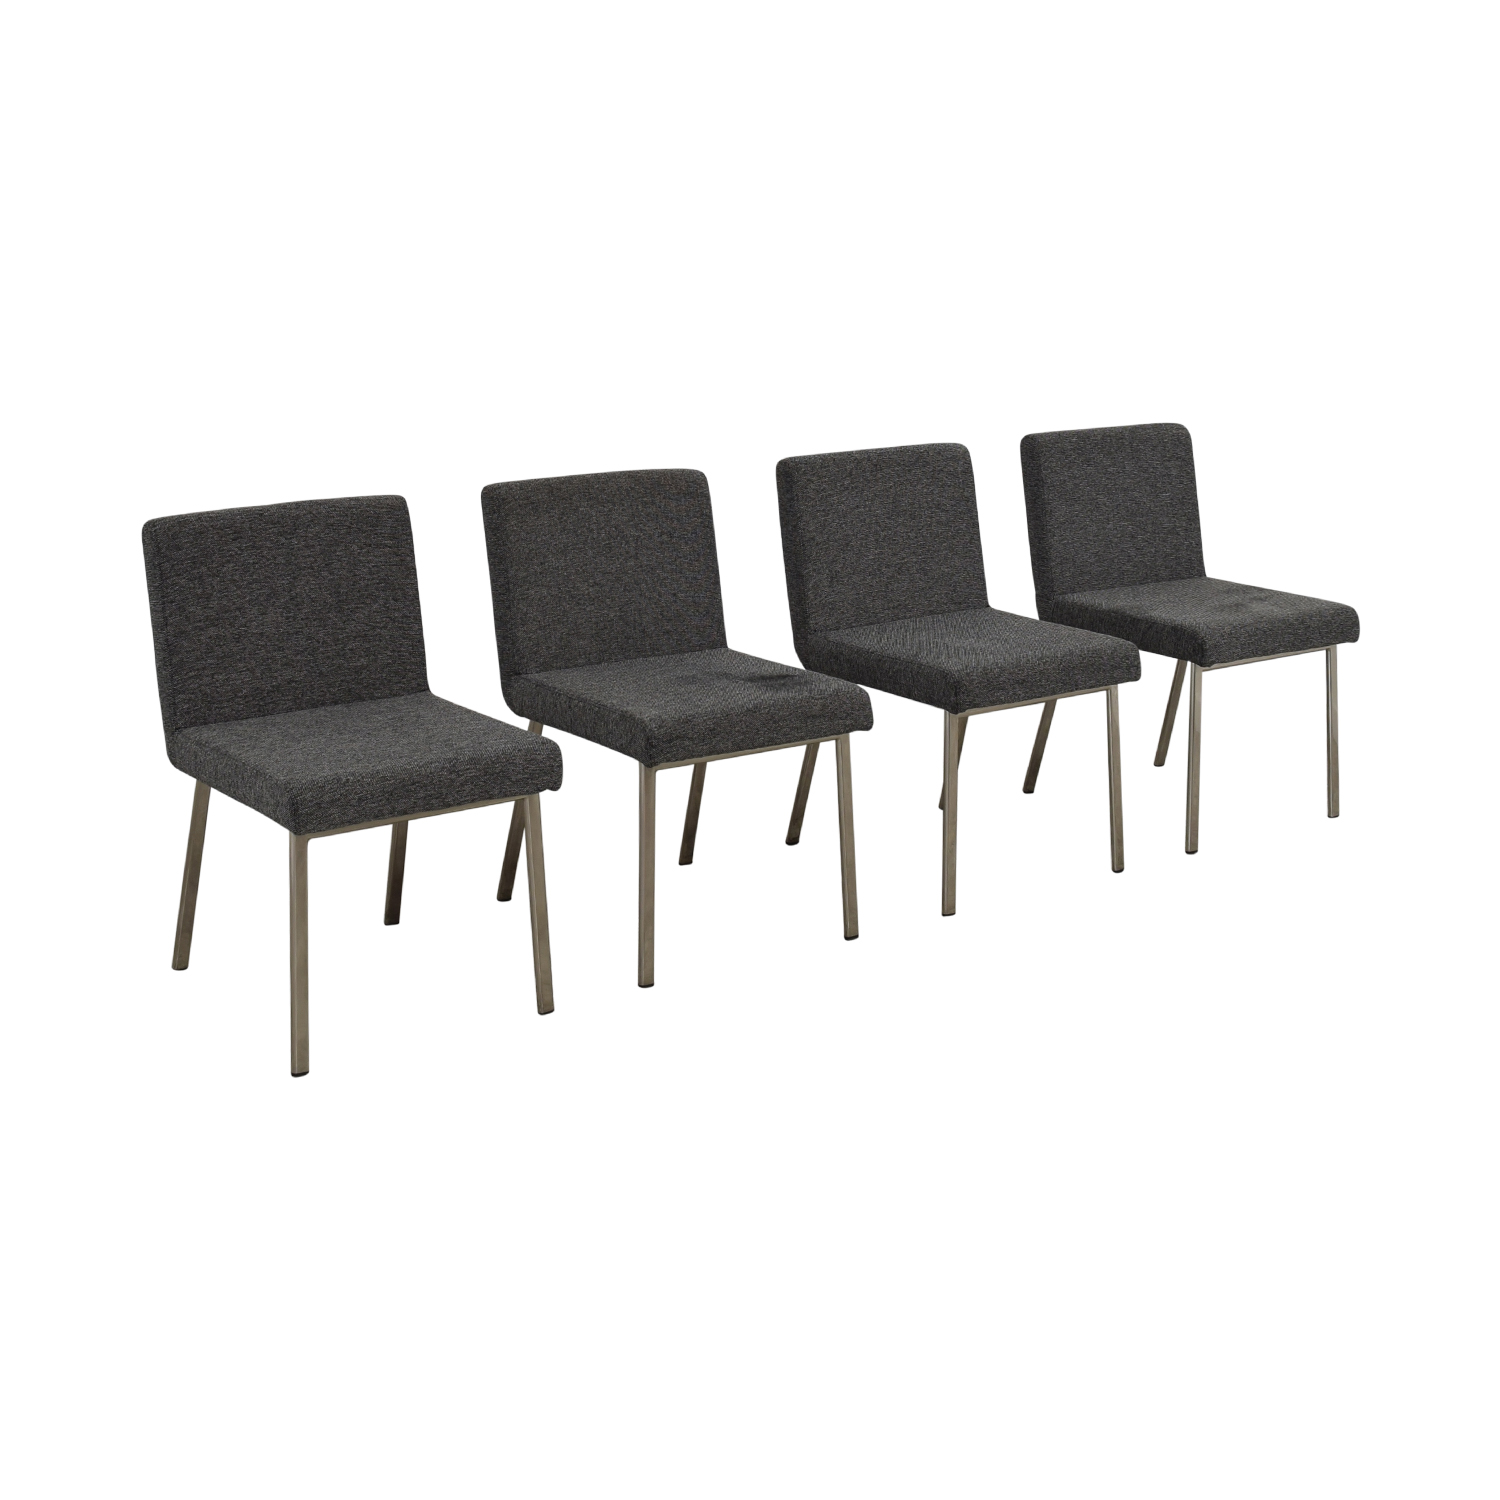 shop CB2 CB2 Functional Dining Room Chairs online